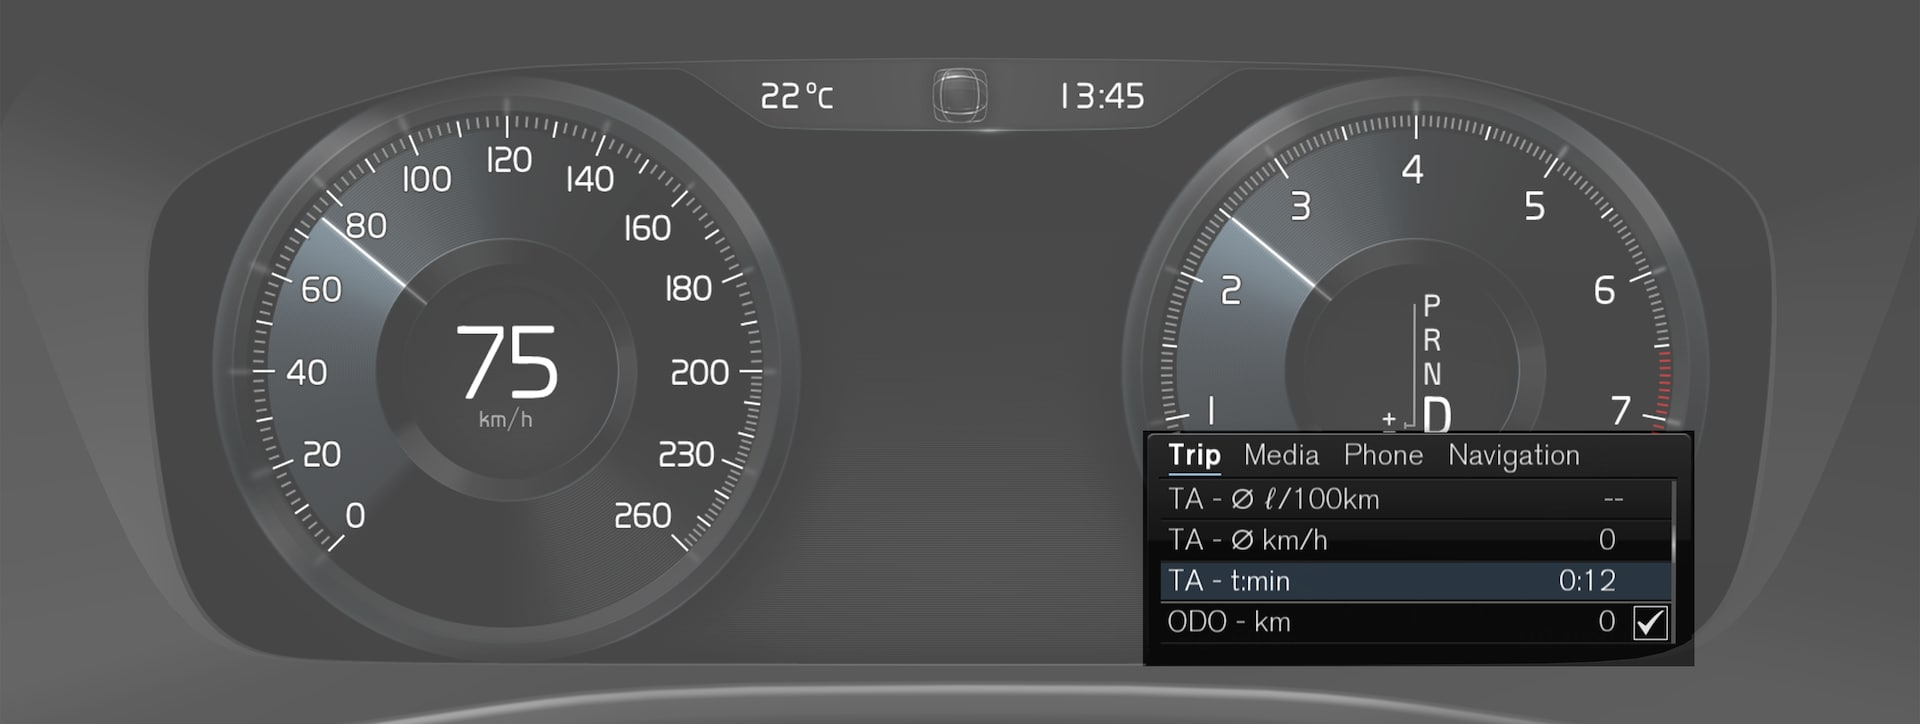 P5-1746-Driver display app menu